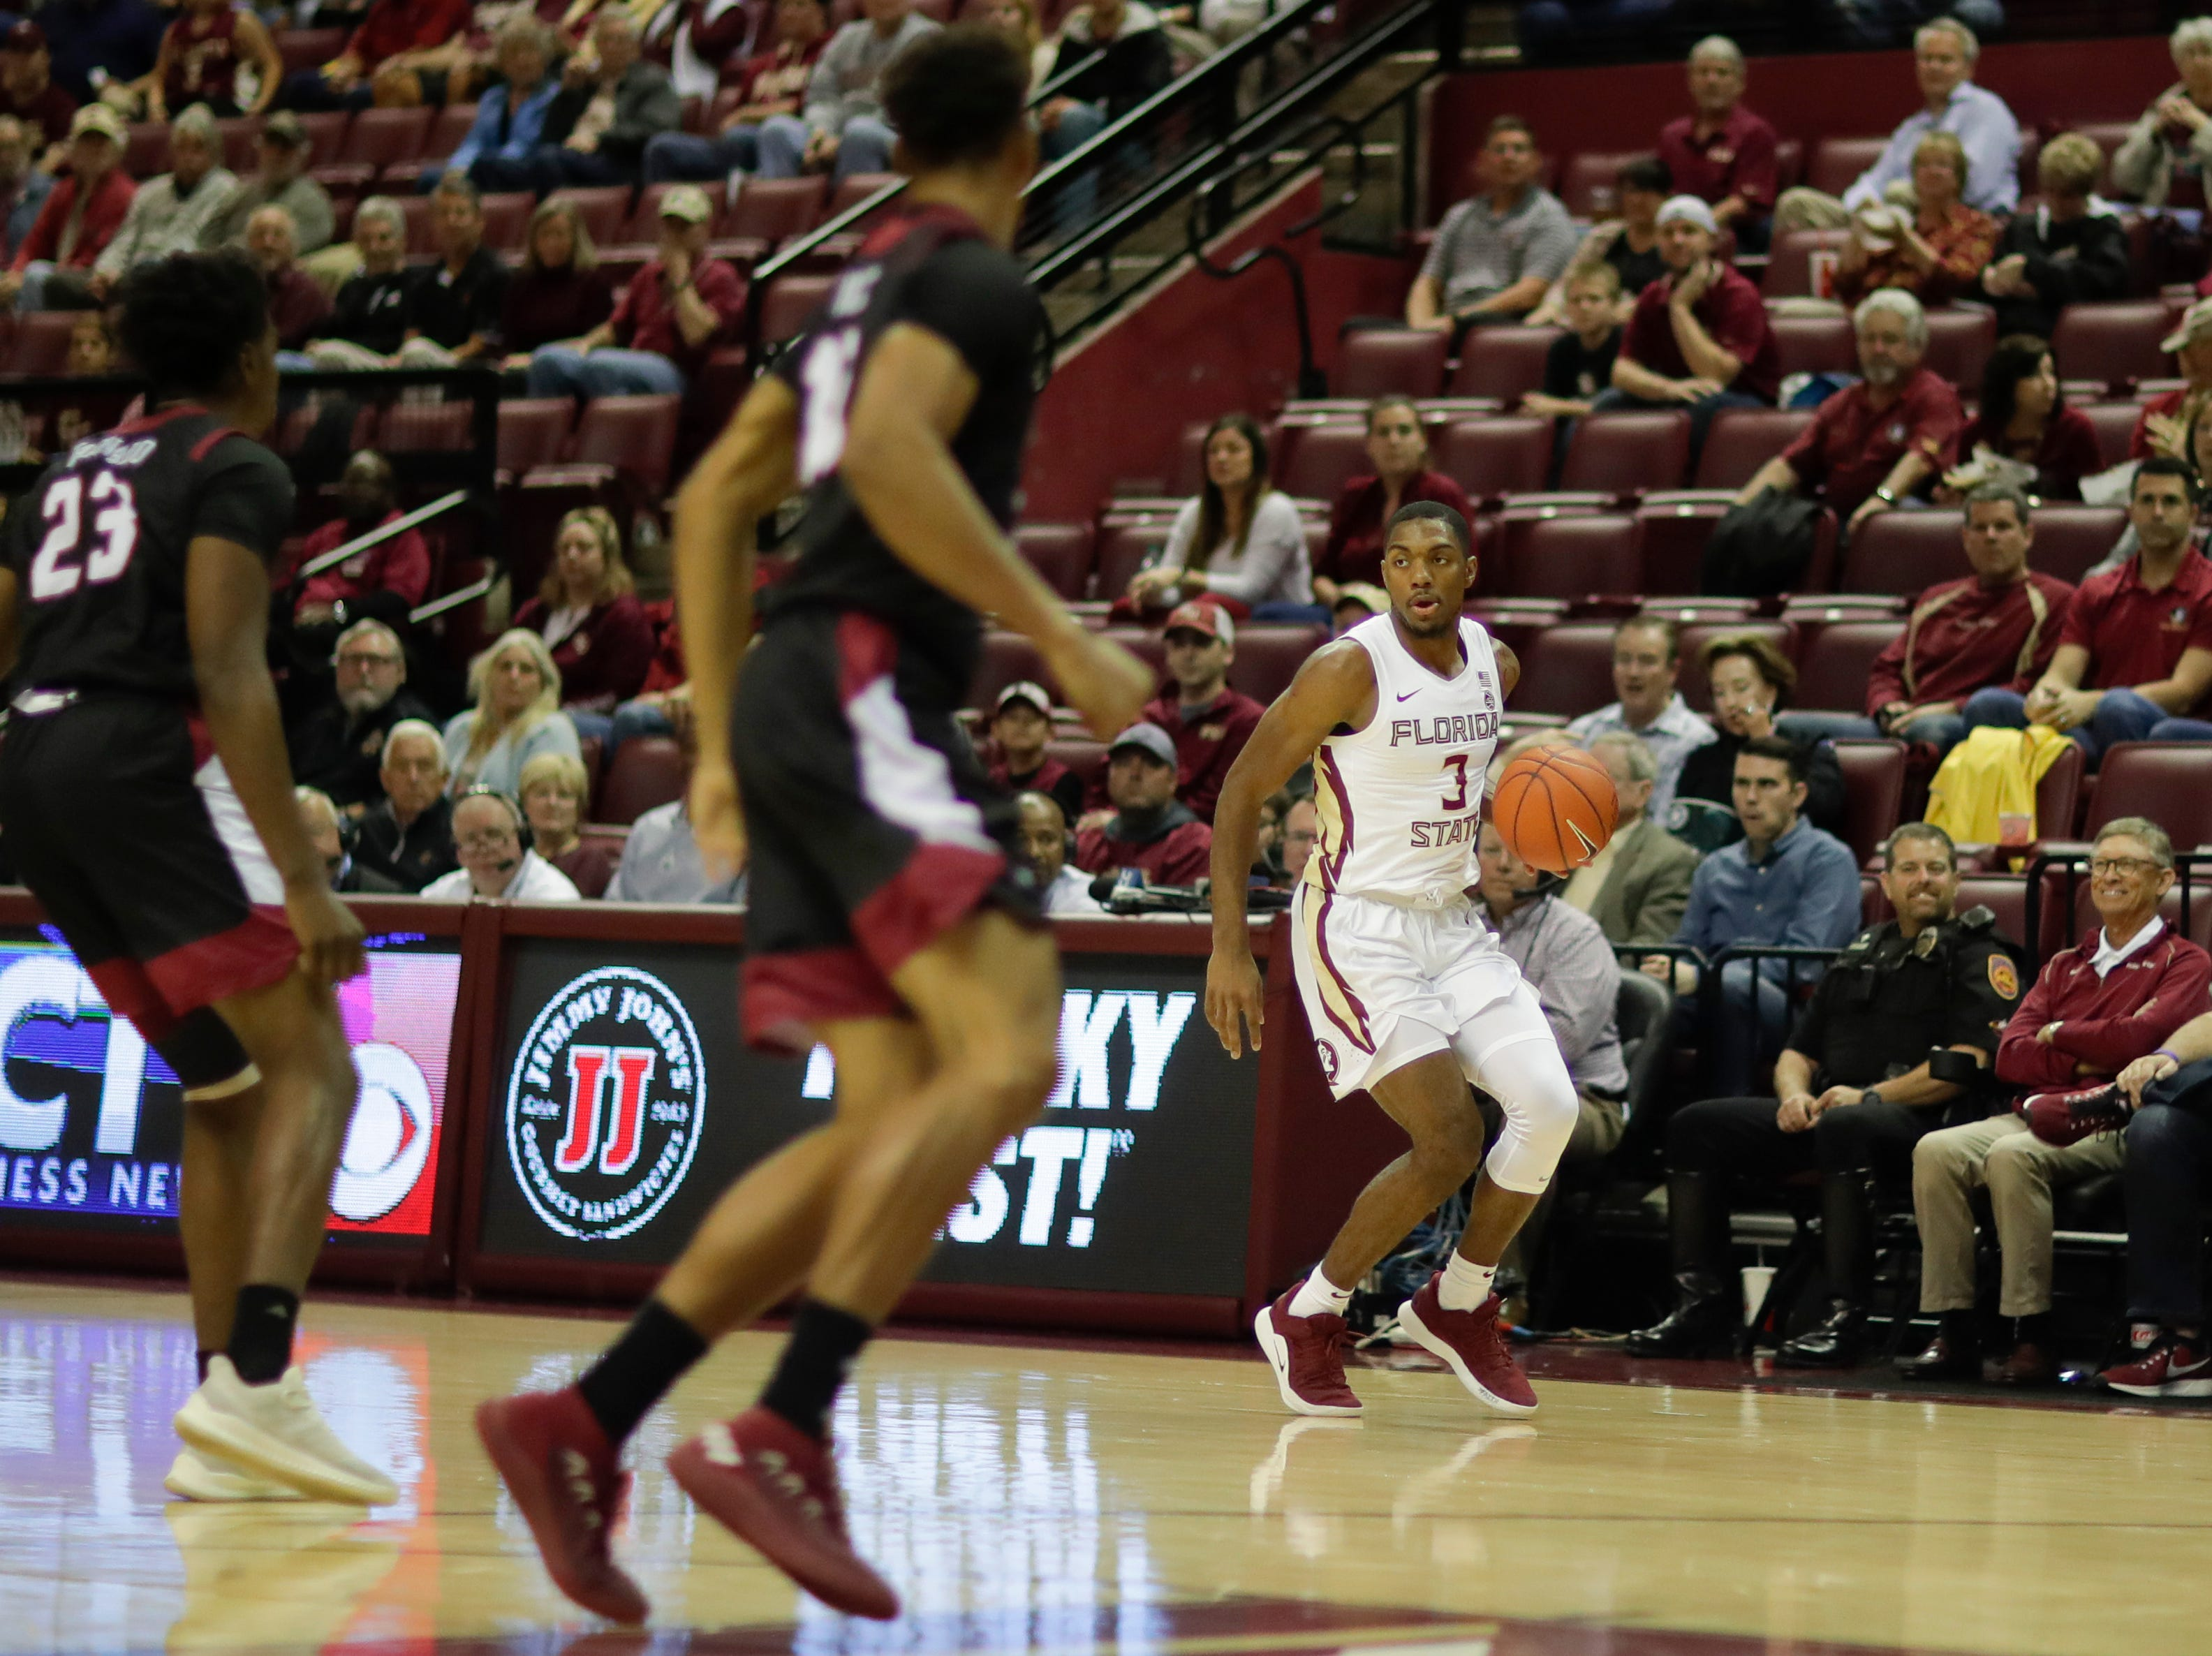 Florida State Seminoles guard Trent Forrest (3) dribbles during a game between FSU and Troy University at Donald L. Tucker Civic Center Monday, Dec. 3, 2018.